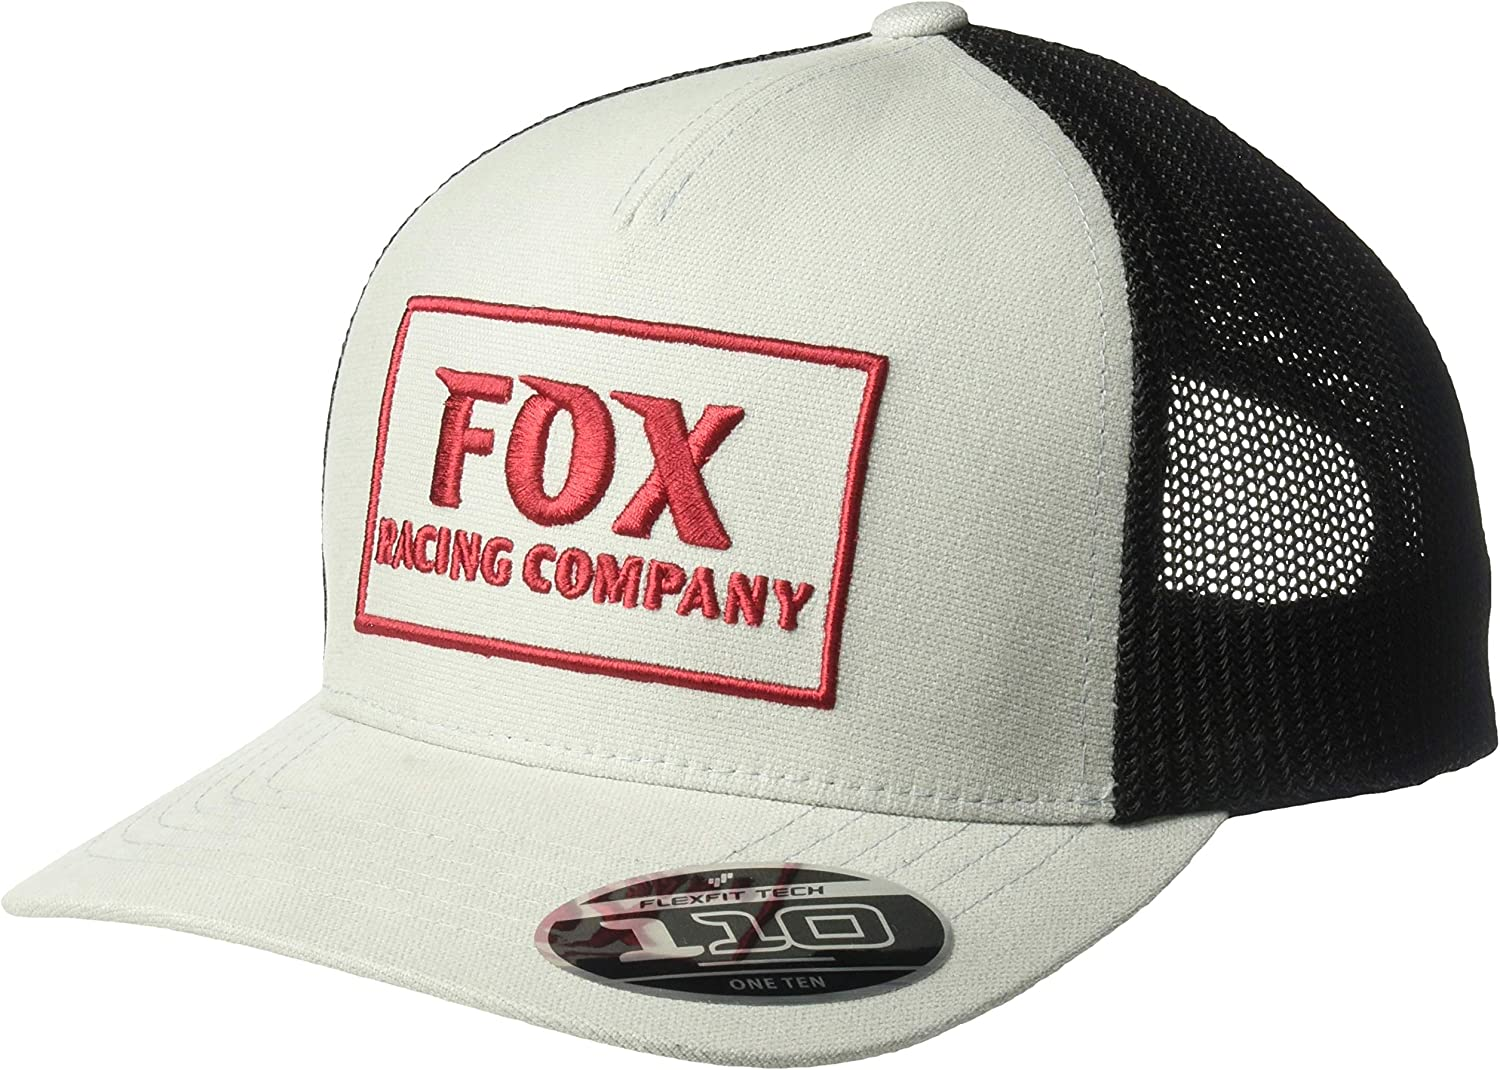 Fox Gorras Heater Steel Grey 110 Trucker: Amazon.es: Ropa y accesorios